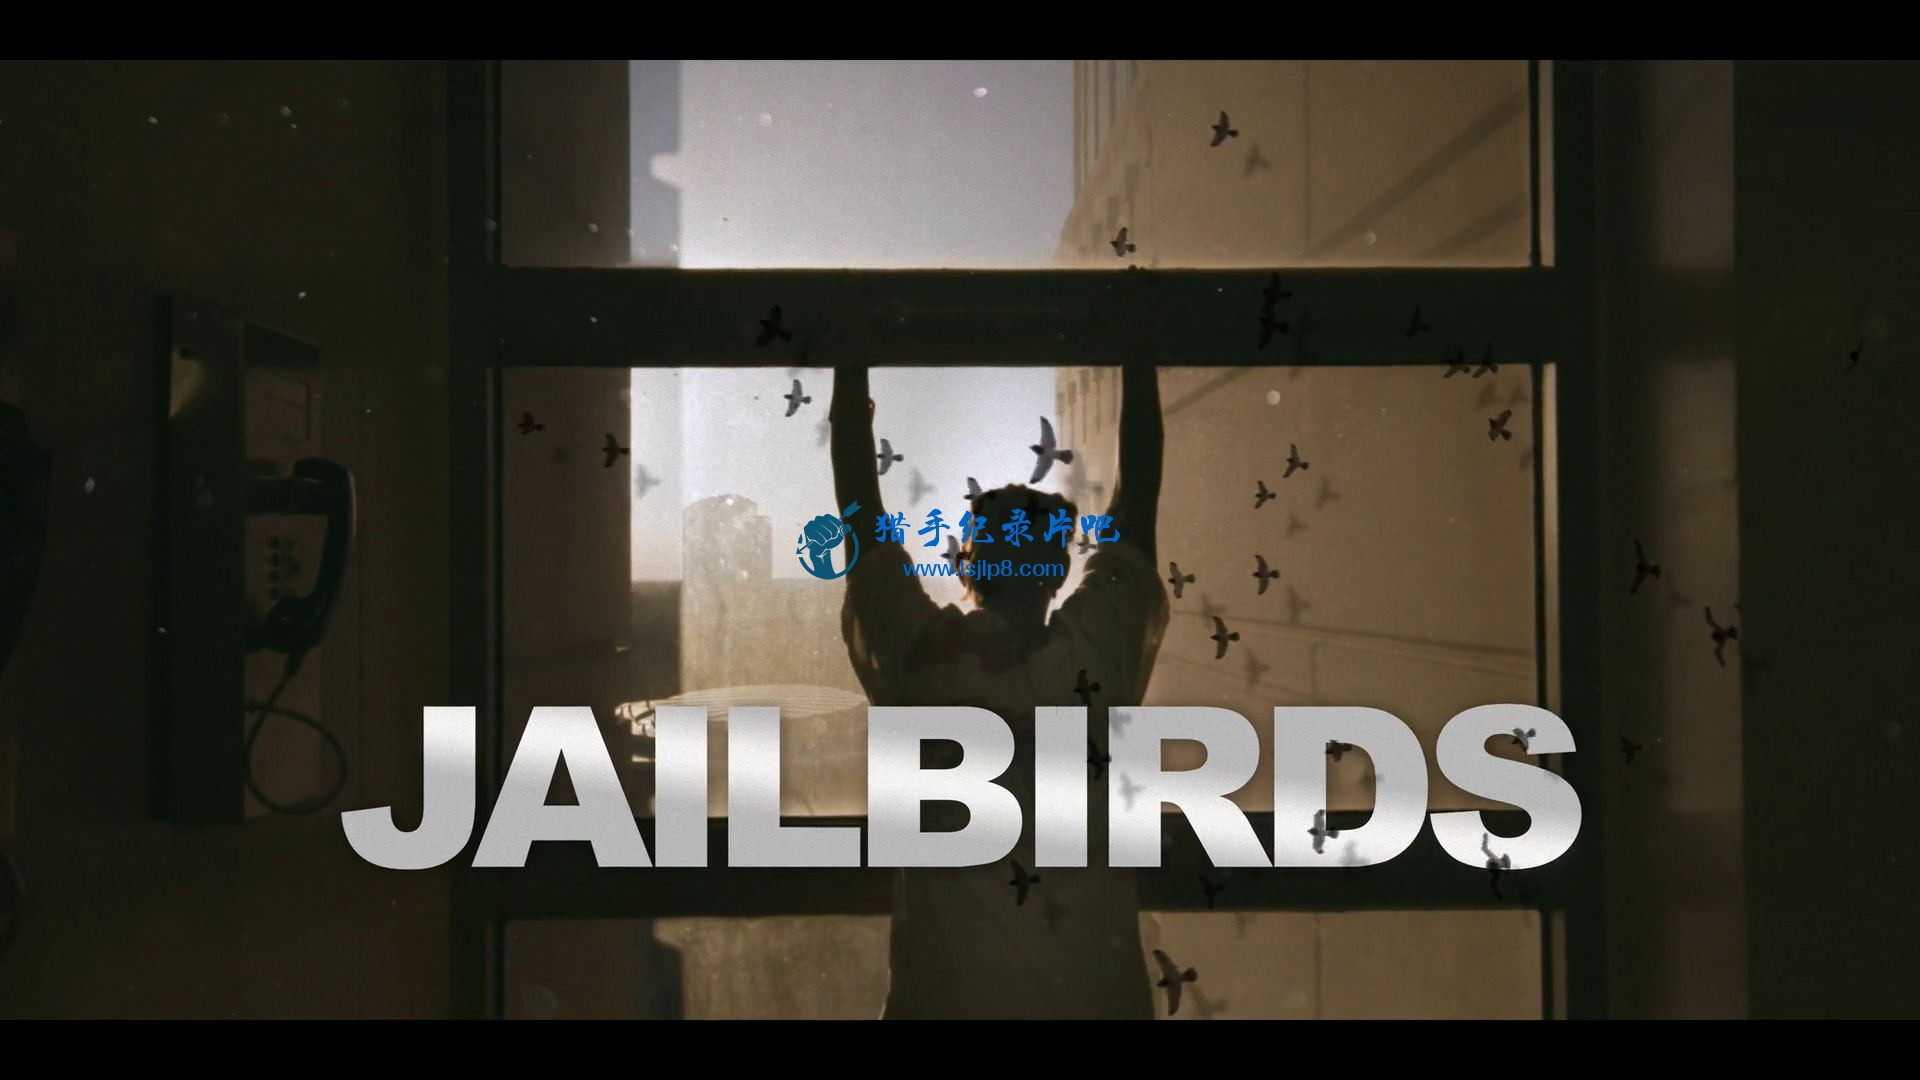 Jailbirds.S01E01.Dressed.into.Oranges.1080p.NF.WEB-DL.DDP5.1.x264-TEPES.mkv_2020.jpg